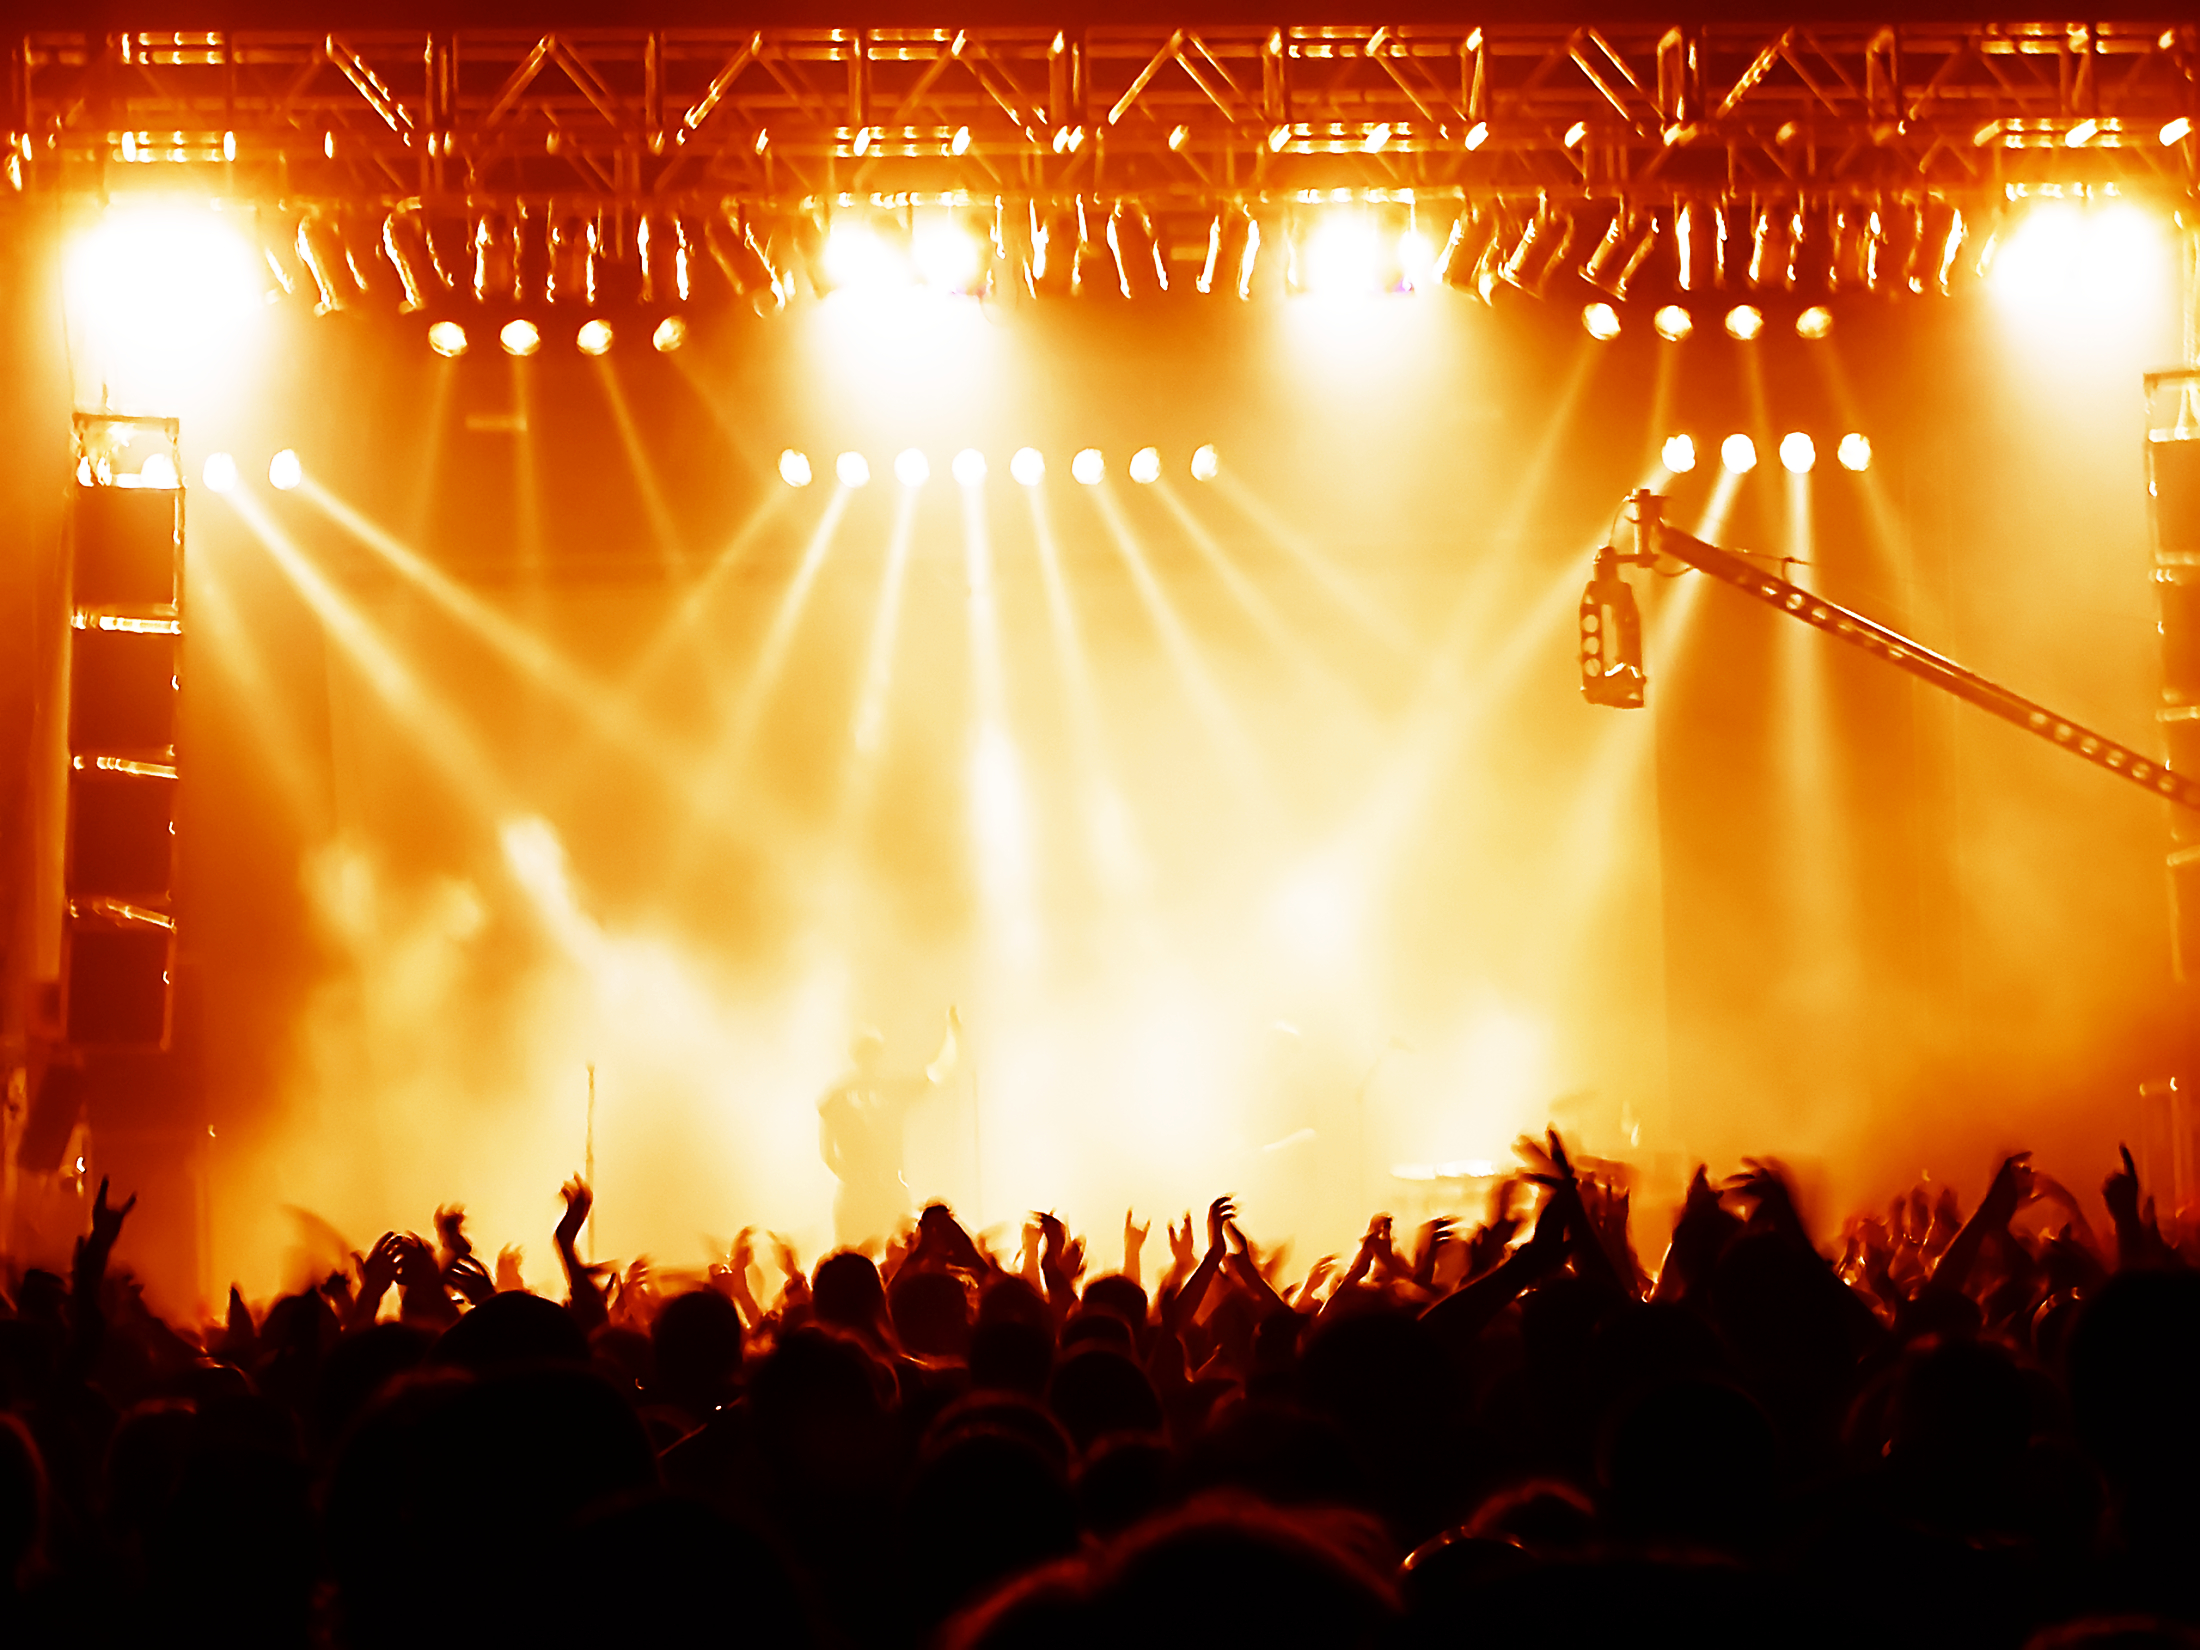 Concert Security Services